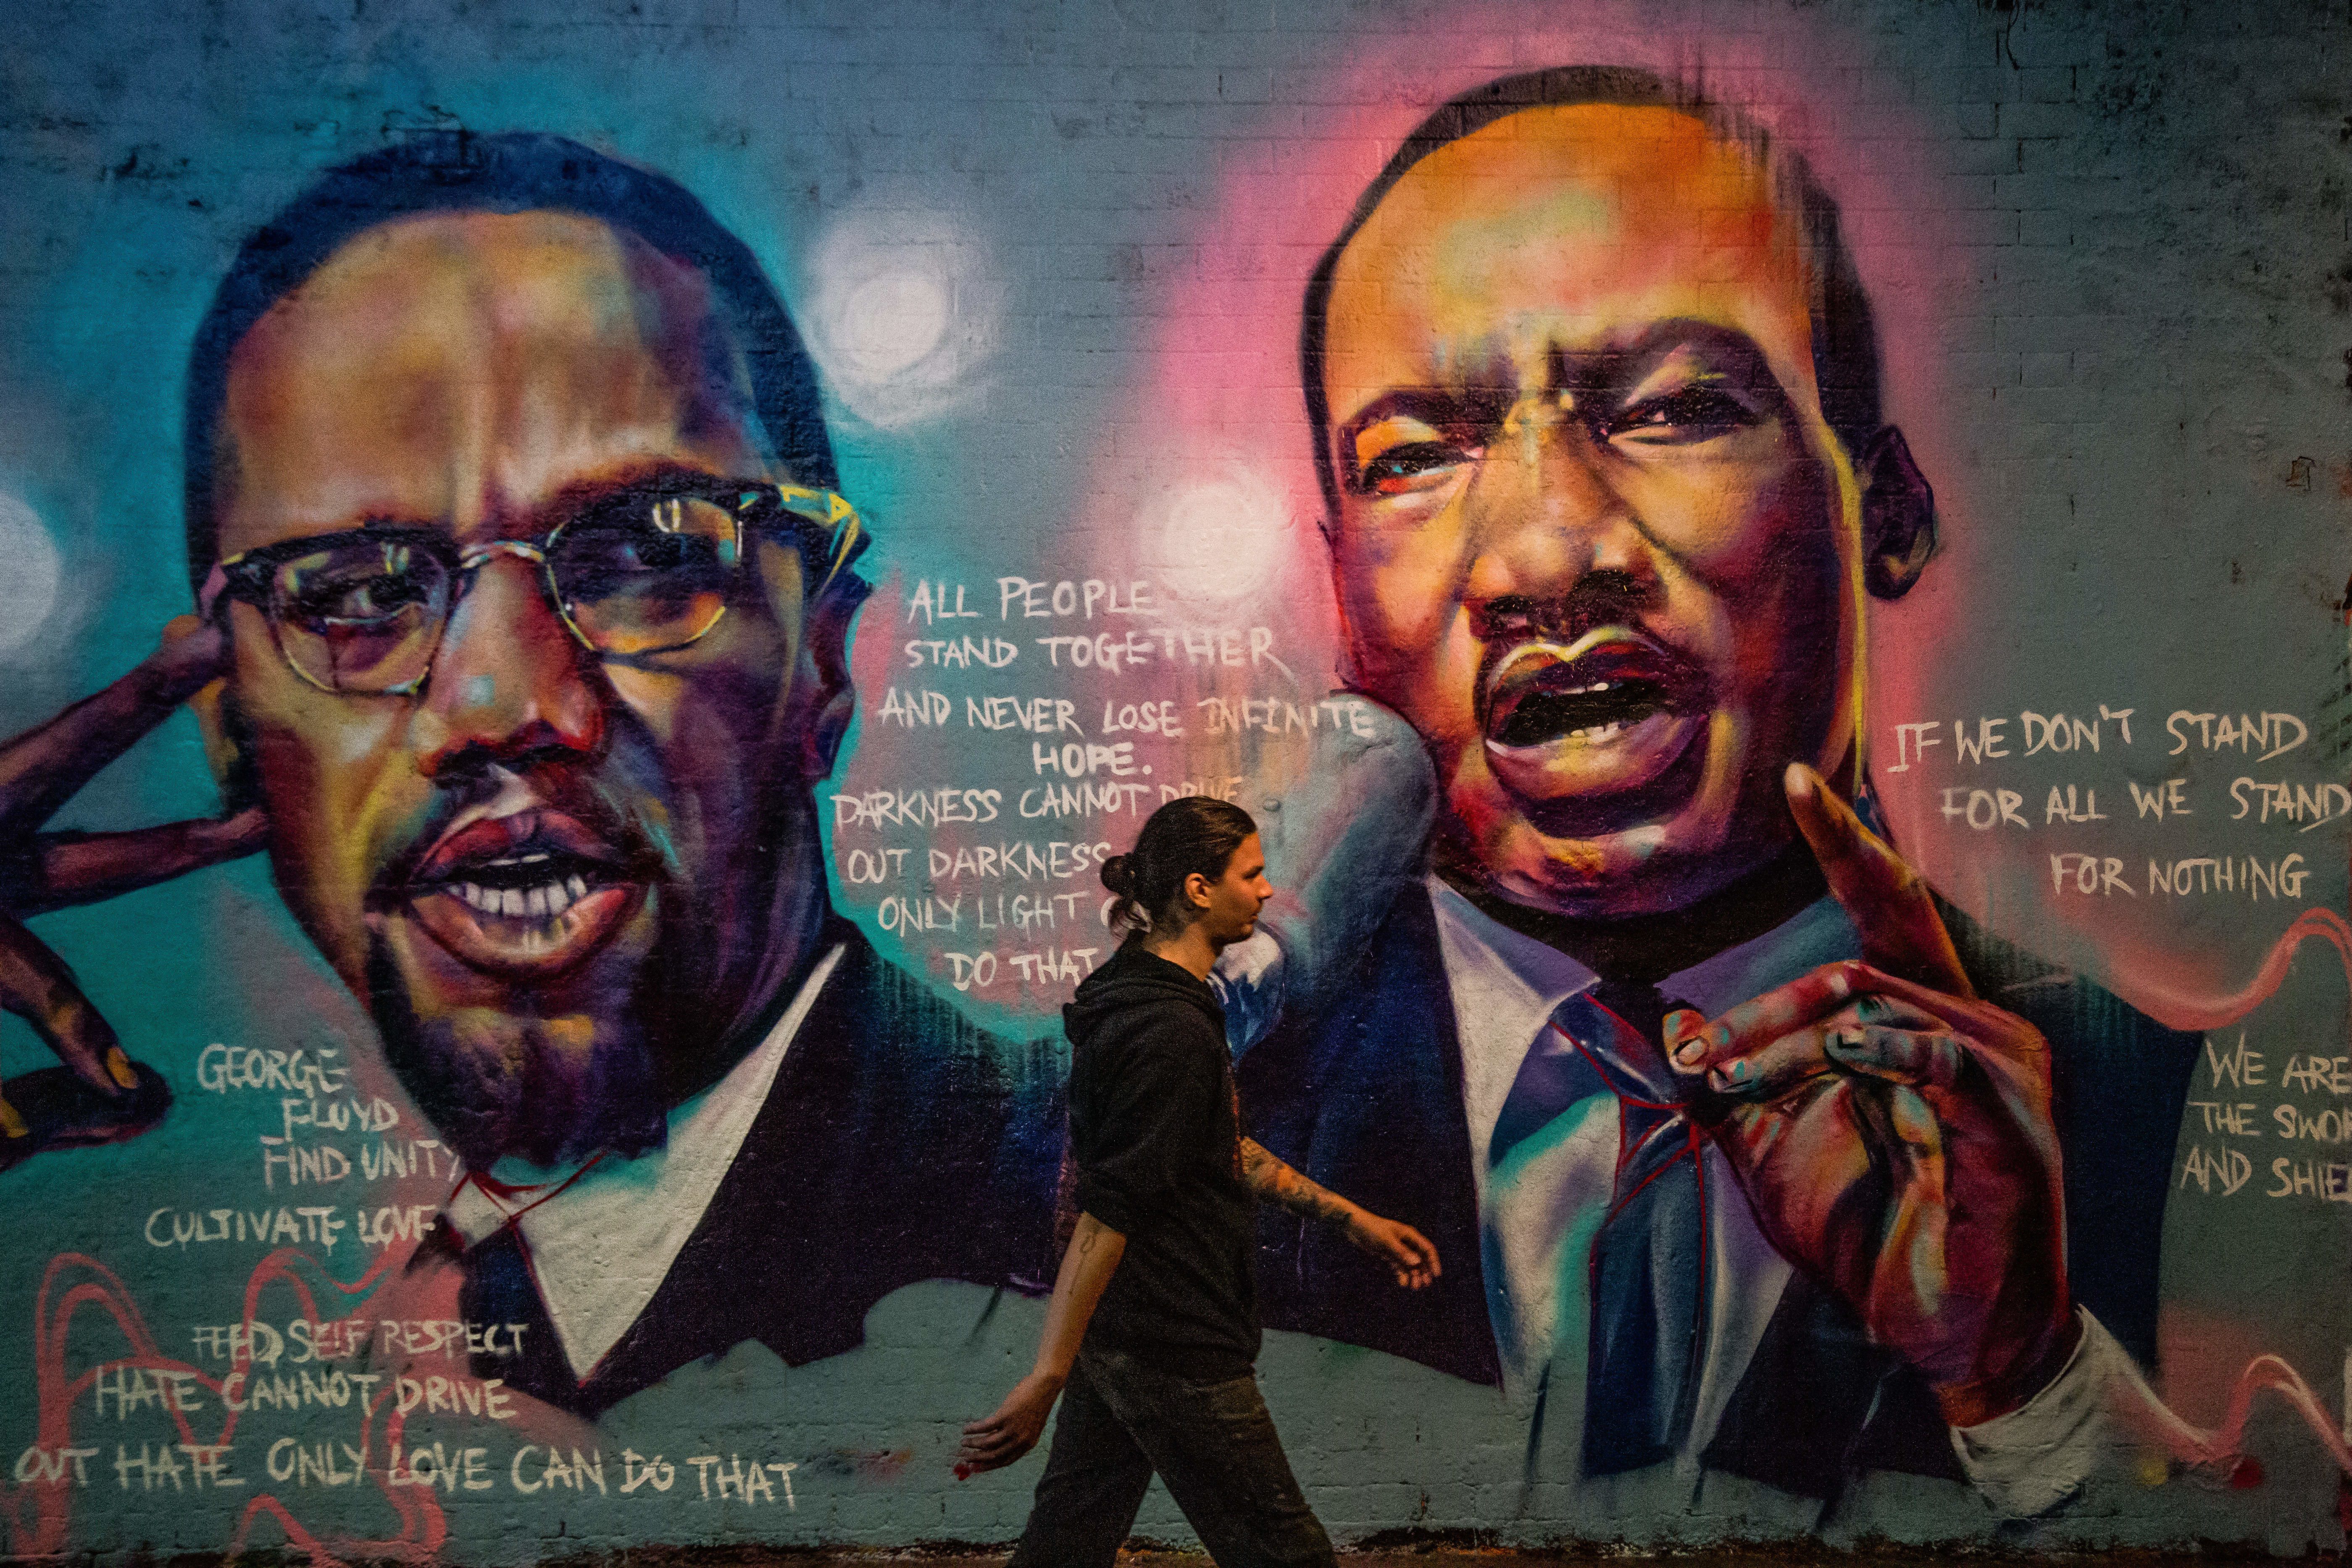 A man walks past a mural of Malcom X and Martin Luther King paying tribute to George Floyd, a Black man who died in police custody in the U.S. Artists have been painting murals and sharing messages in London. (Photo by Thabo Jaiyesimi / SOPA Images/Sipa USA)